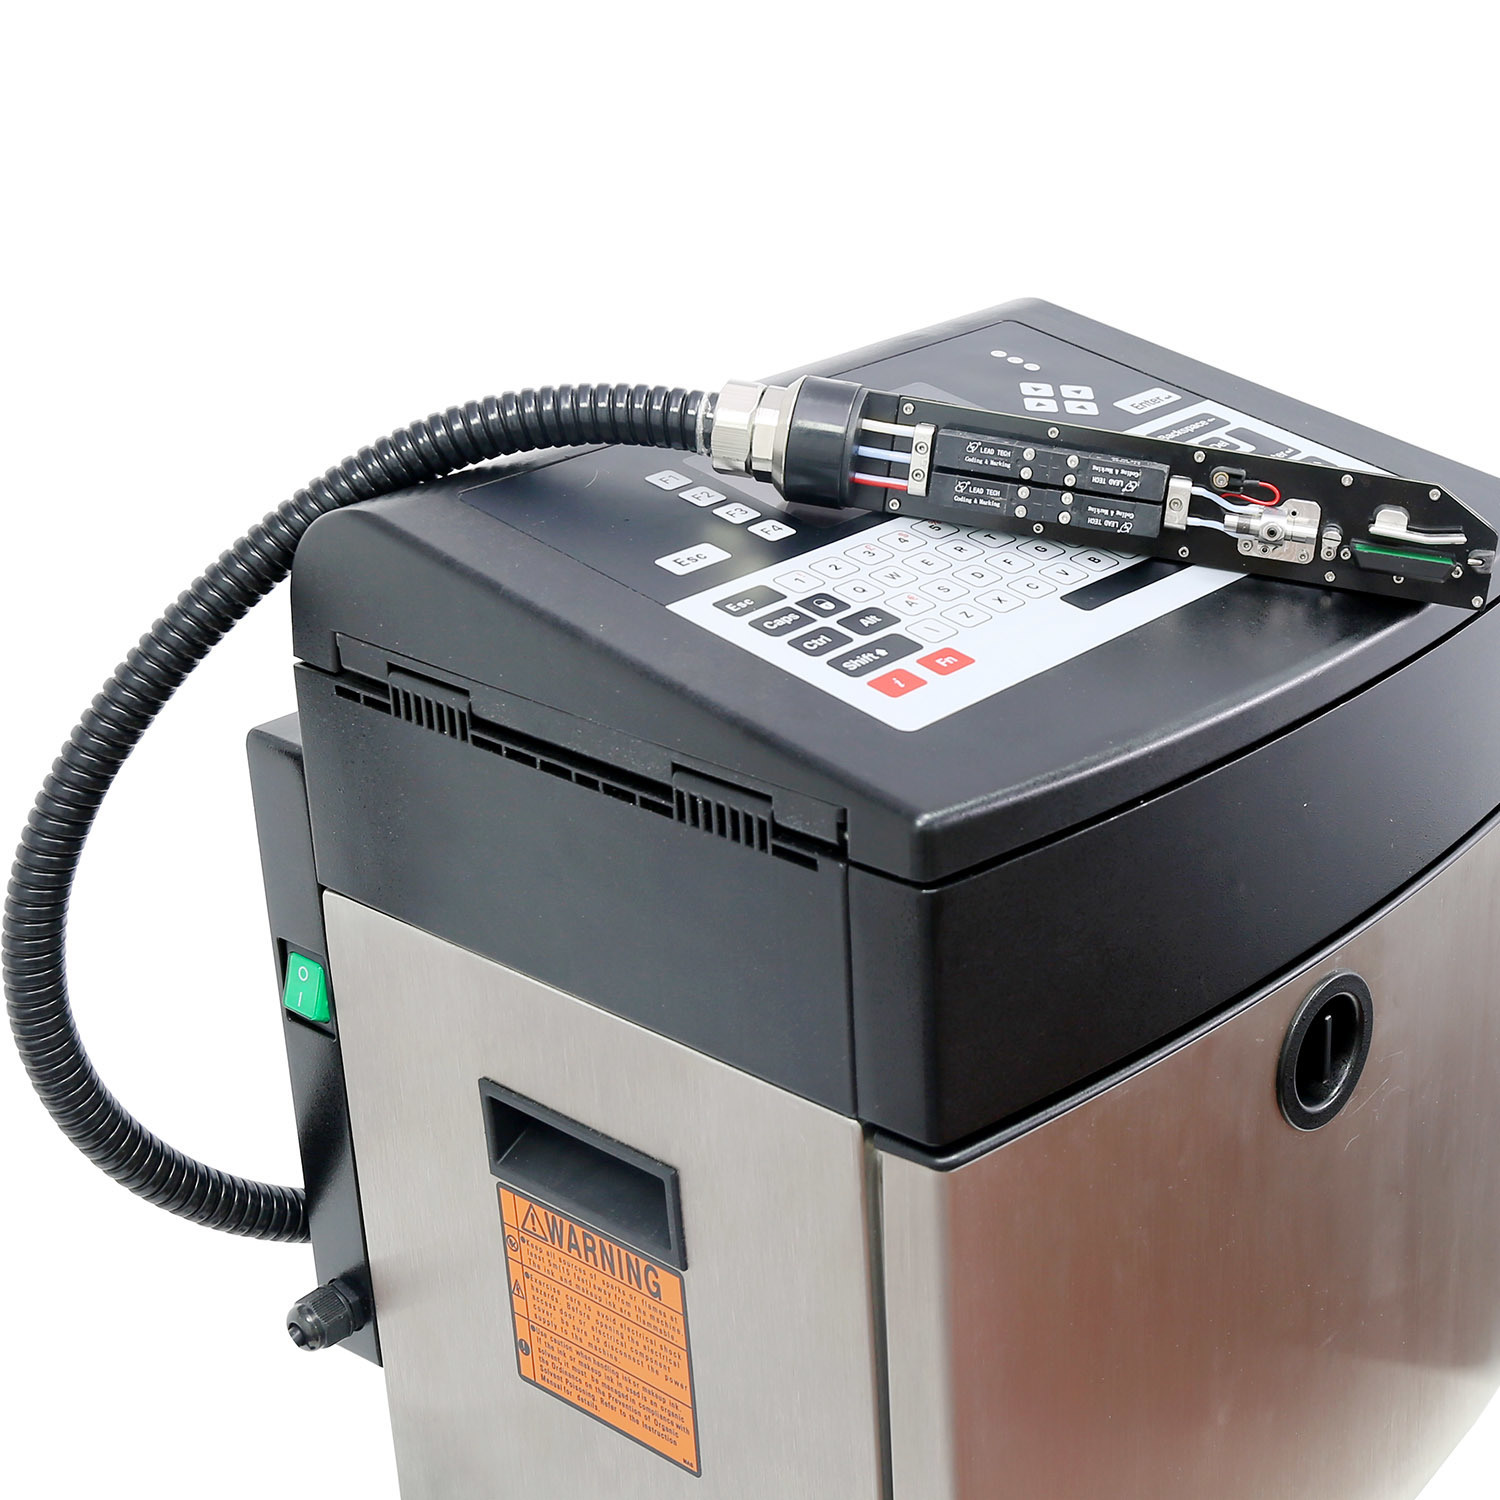 Lead Tech Coding & Marking Inkjet Printer